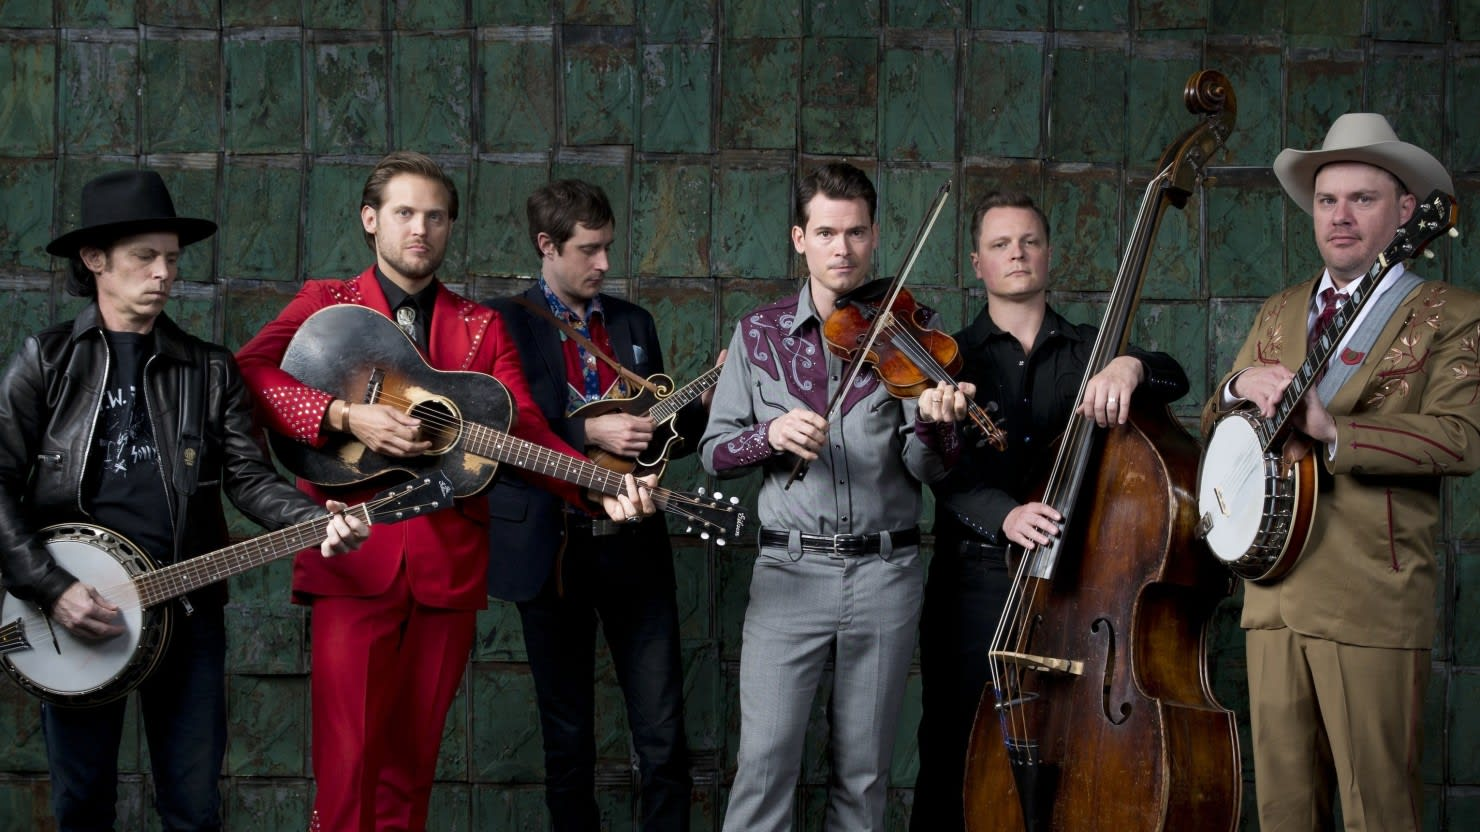 Old Crow Medicine Show Tour 2020.Old Crow Medicine Show Tour Dates And Concert Tickets